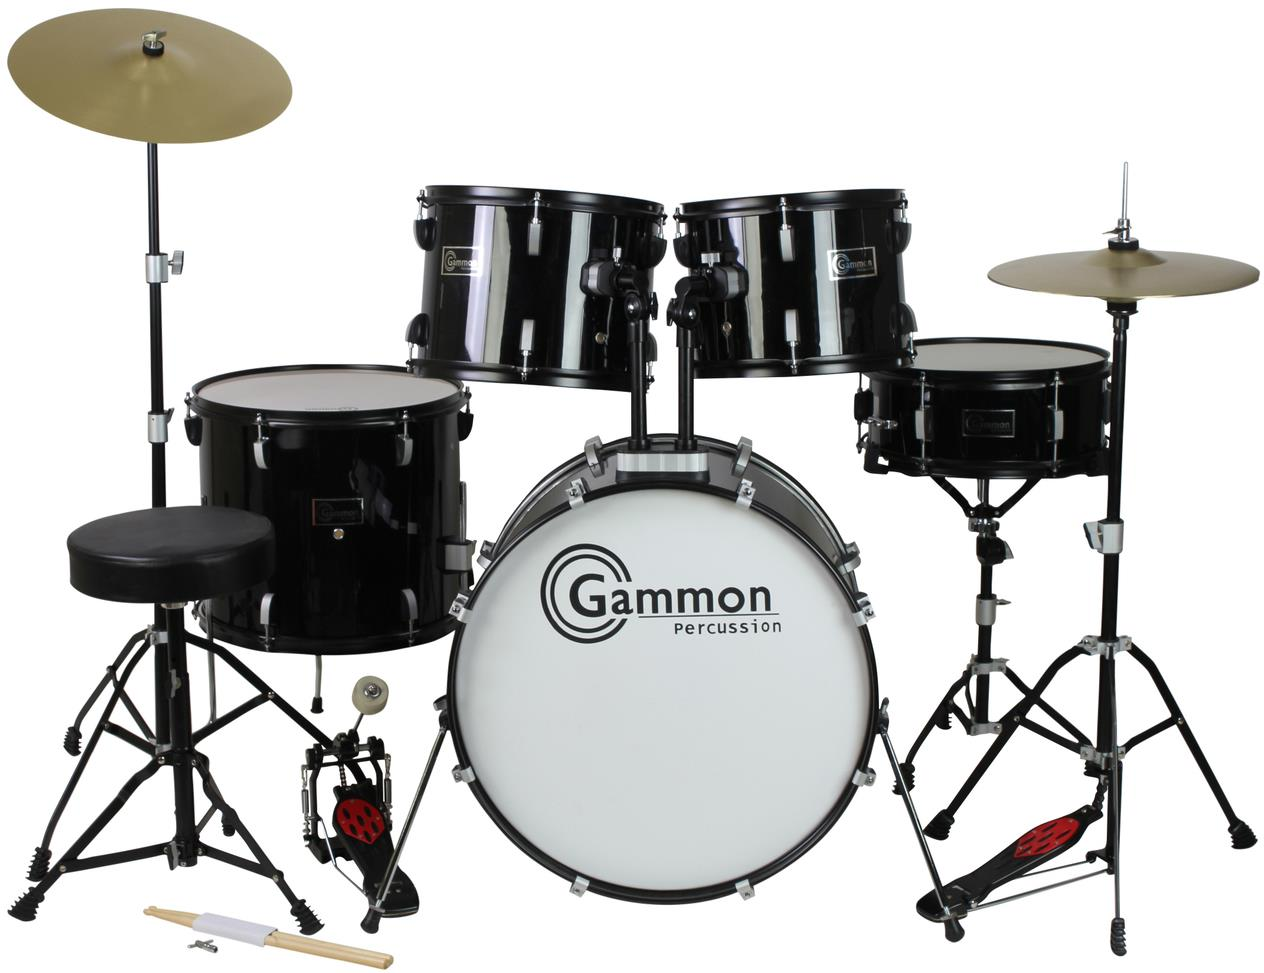 Gammon Percussion SP5 Acoustic 5 Piece Drum Set - Black